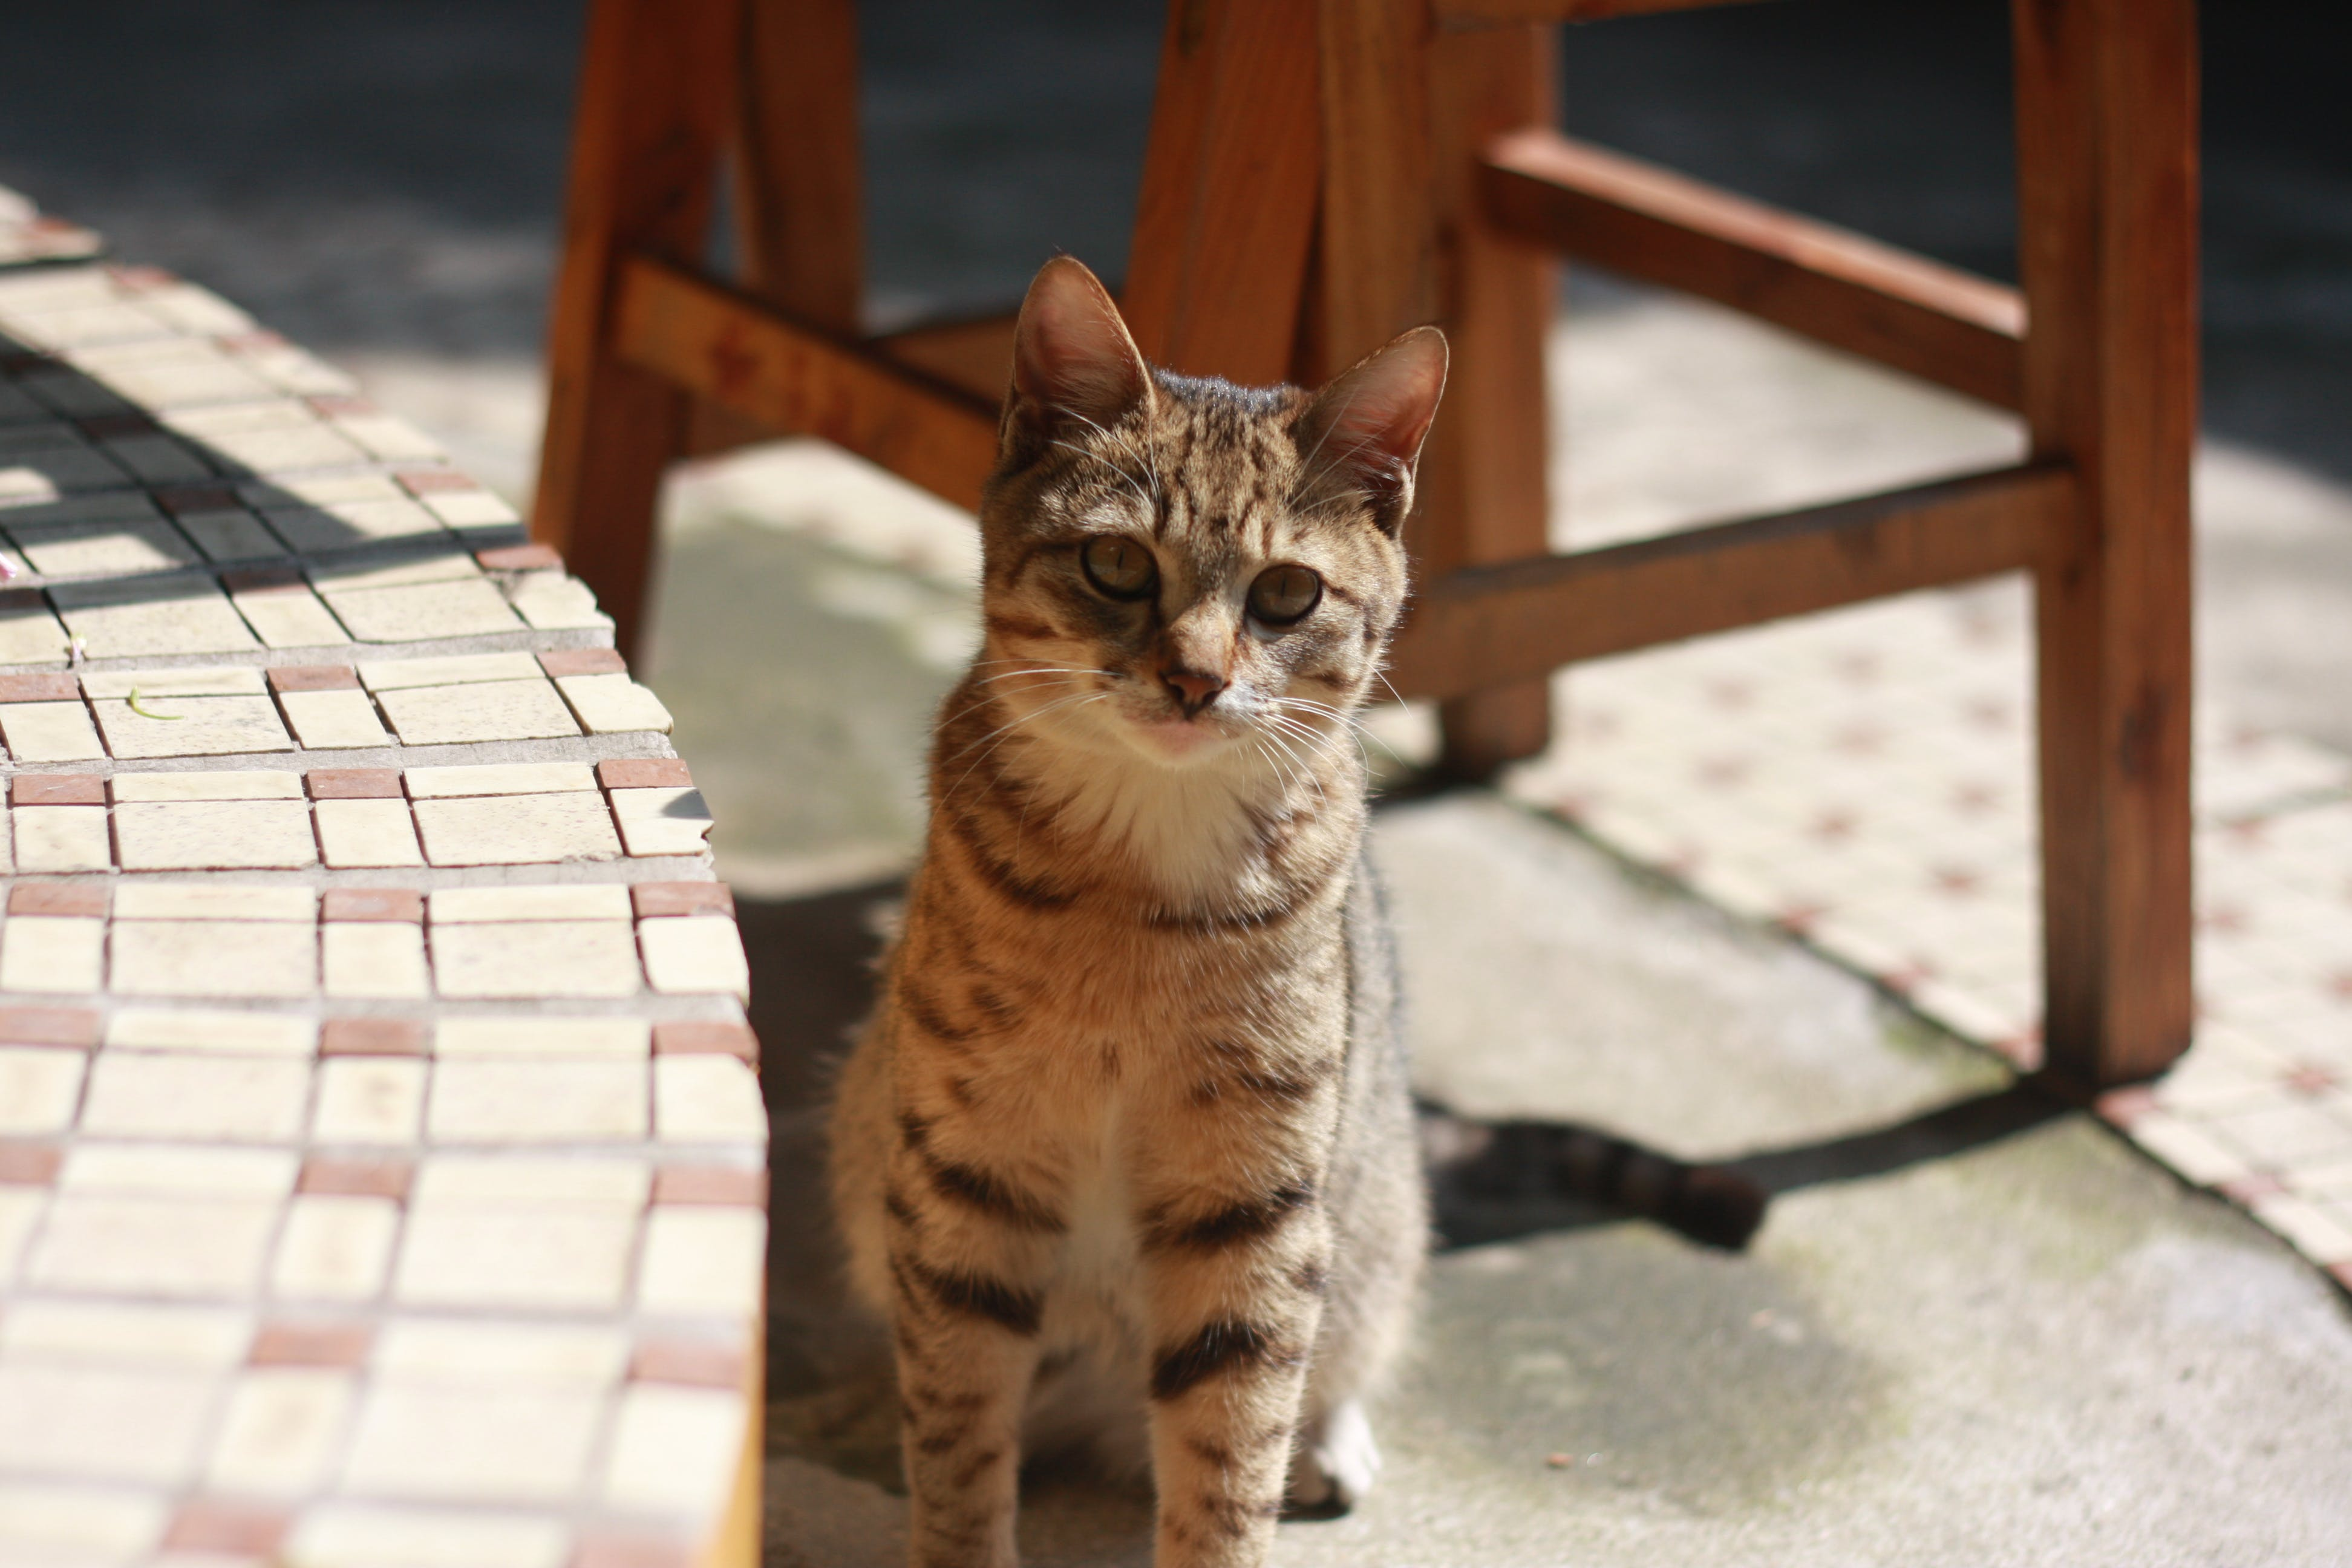 Brown Tabby Cat Sitting on Concrete Floor during Daytime